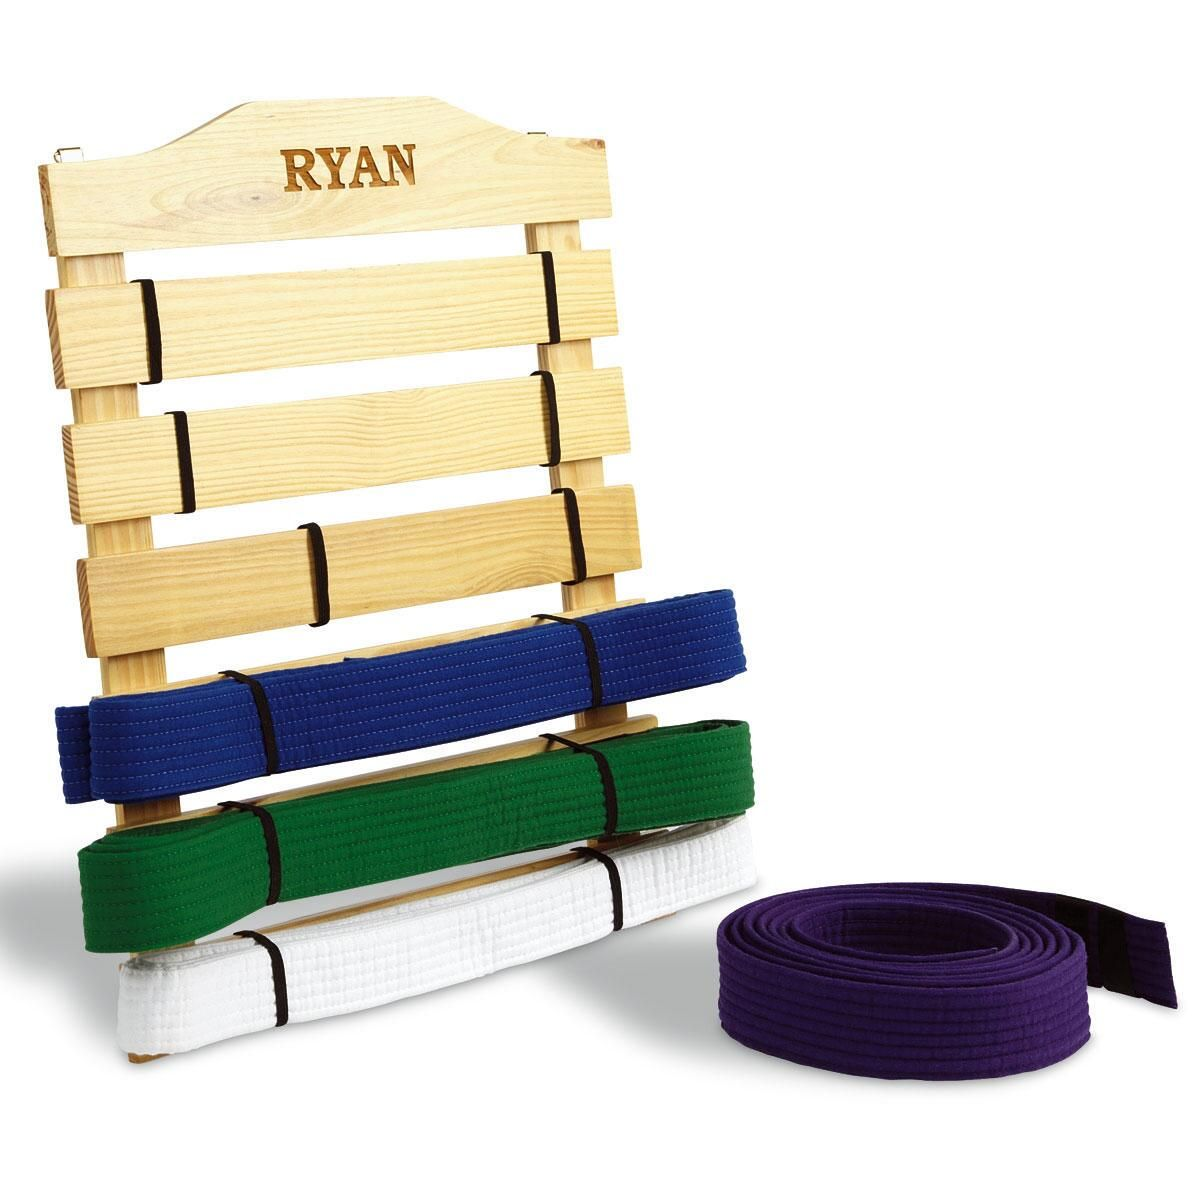 Martial Arts Personalized Wooden Belt Display Rack